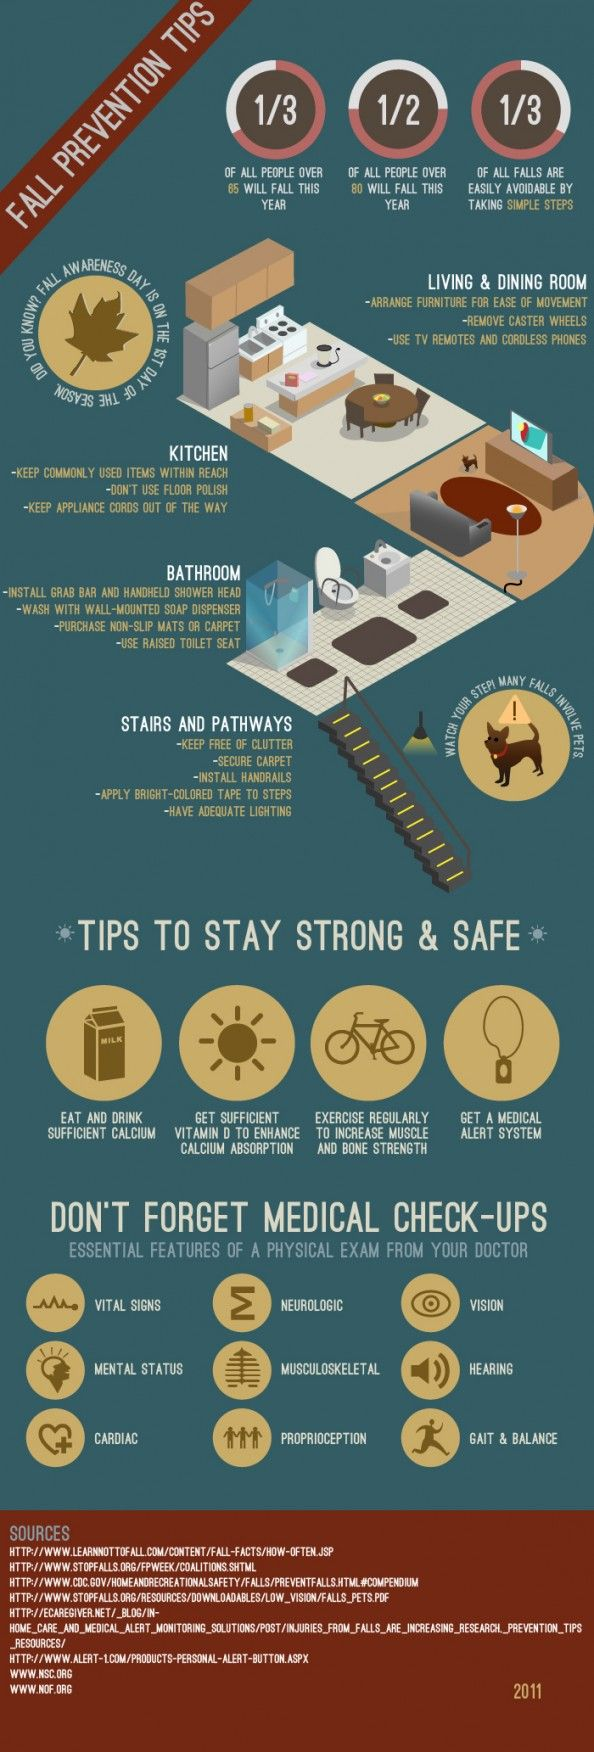 From slick floors to overzealous pets, our homes are filled with obstacles that can cause us to fall. The dangers of fall-related injuries are especially high for senior citizens. In fact, one-third of all people over 65 will fall this year. This infographic further explores what you can do to keep yourself and your elderly loved ones safe from falls in the living room, dining room, kitchen, bathroom and stairways.